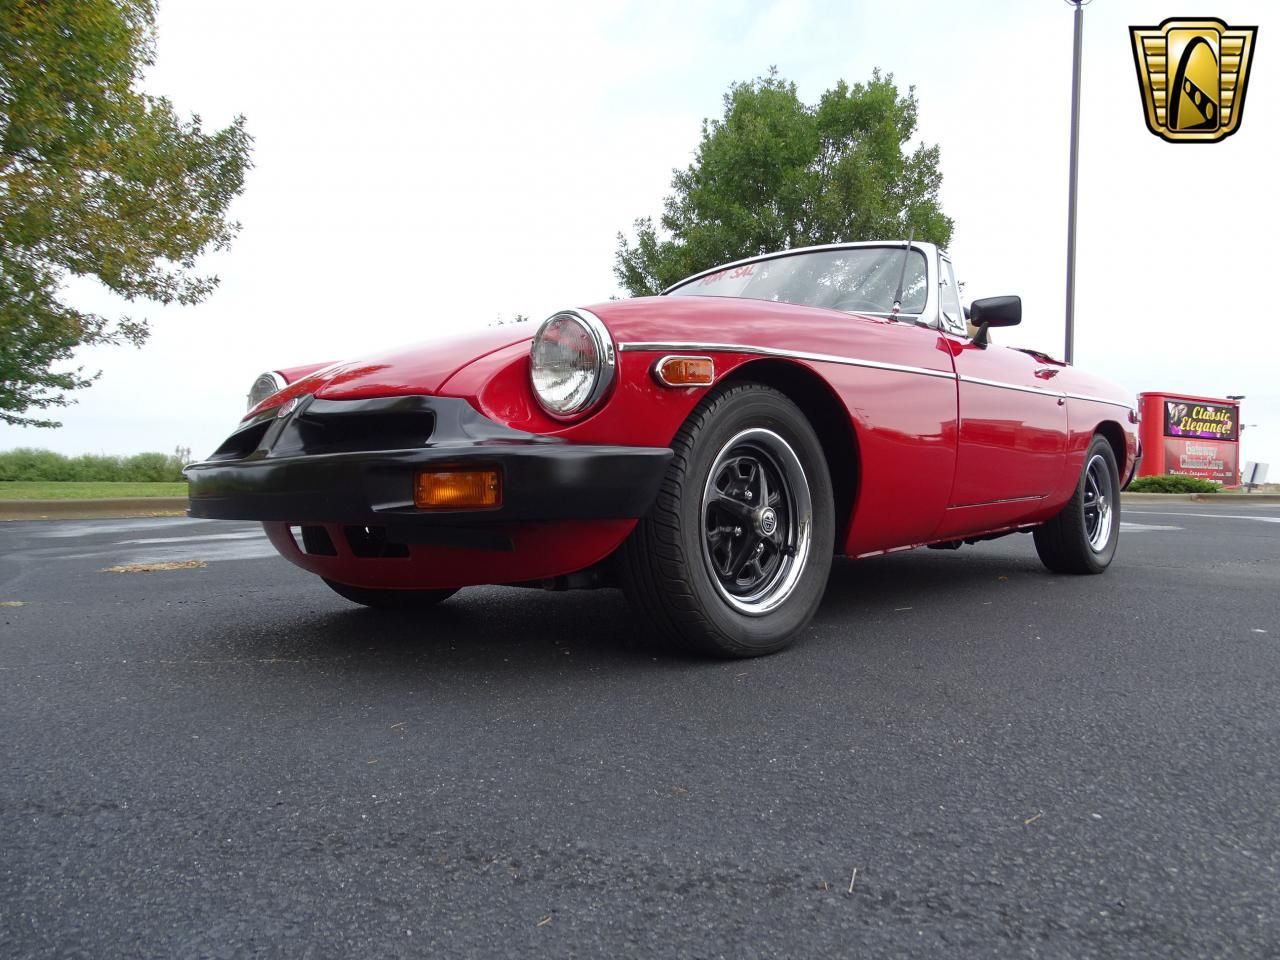 Large Picture of '78 MG MGB - $11,995.00 - LVNA